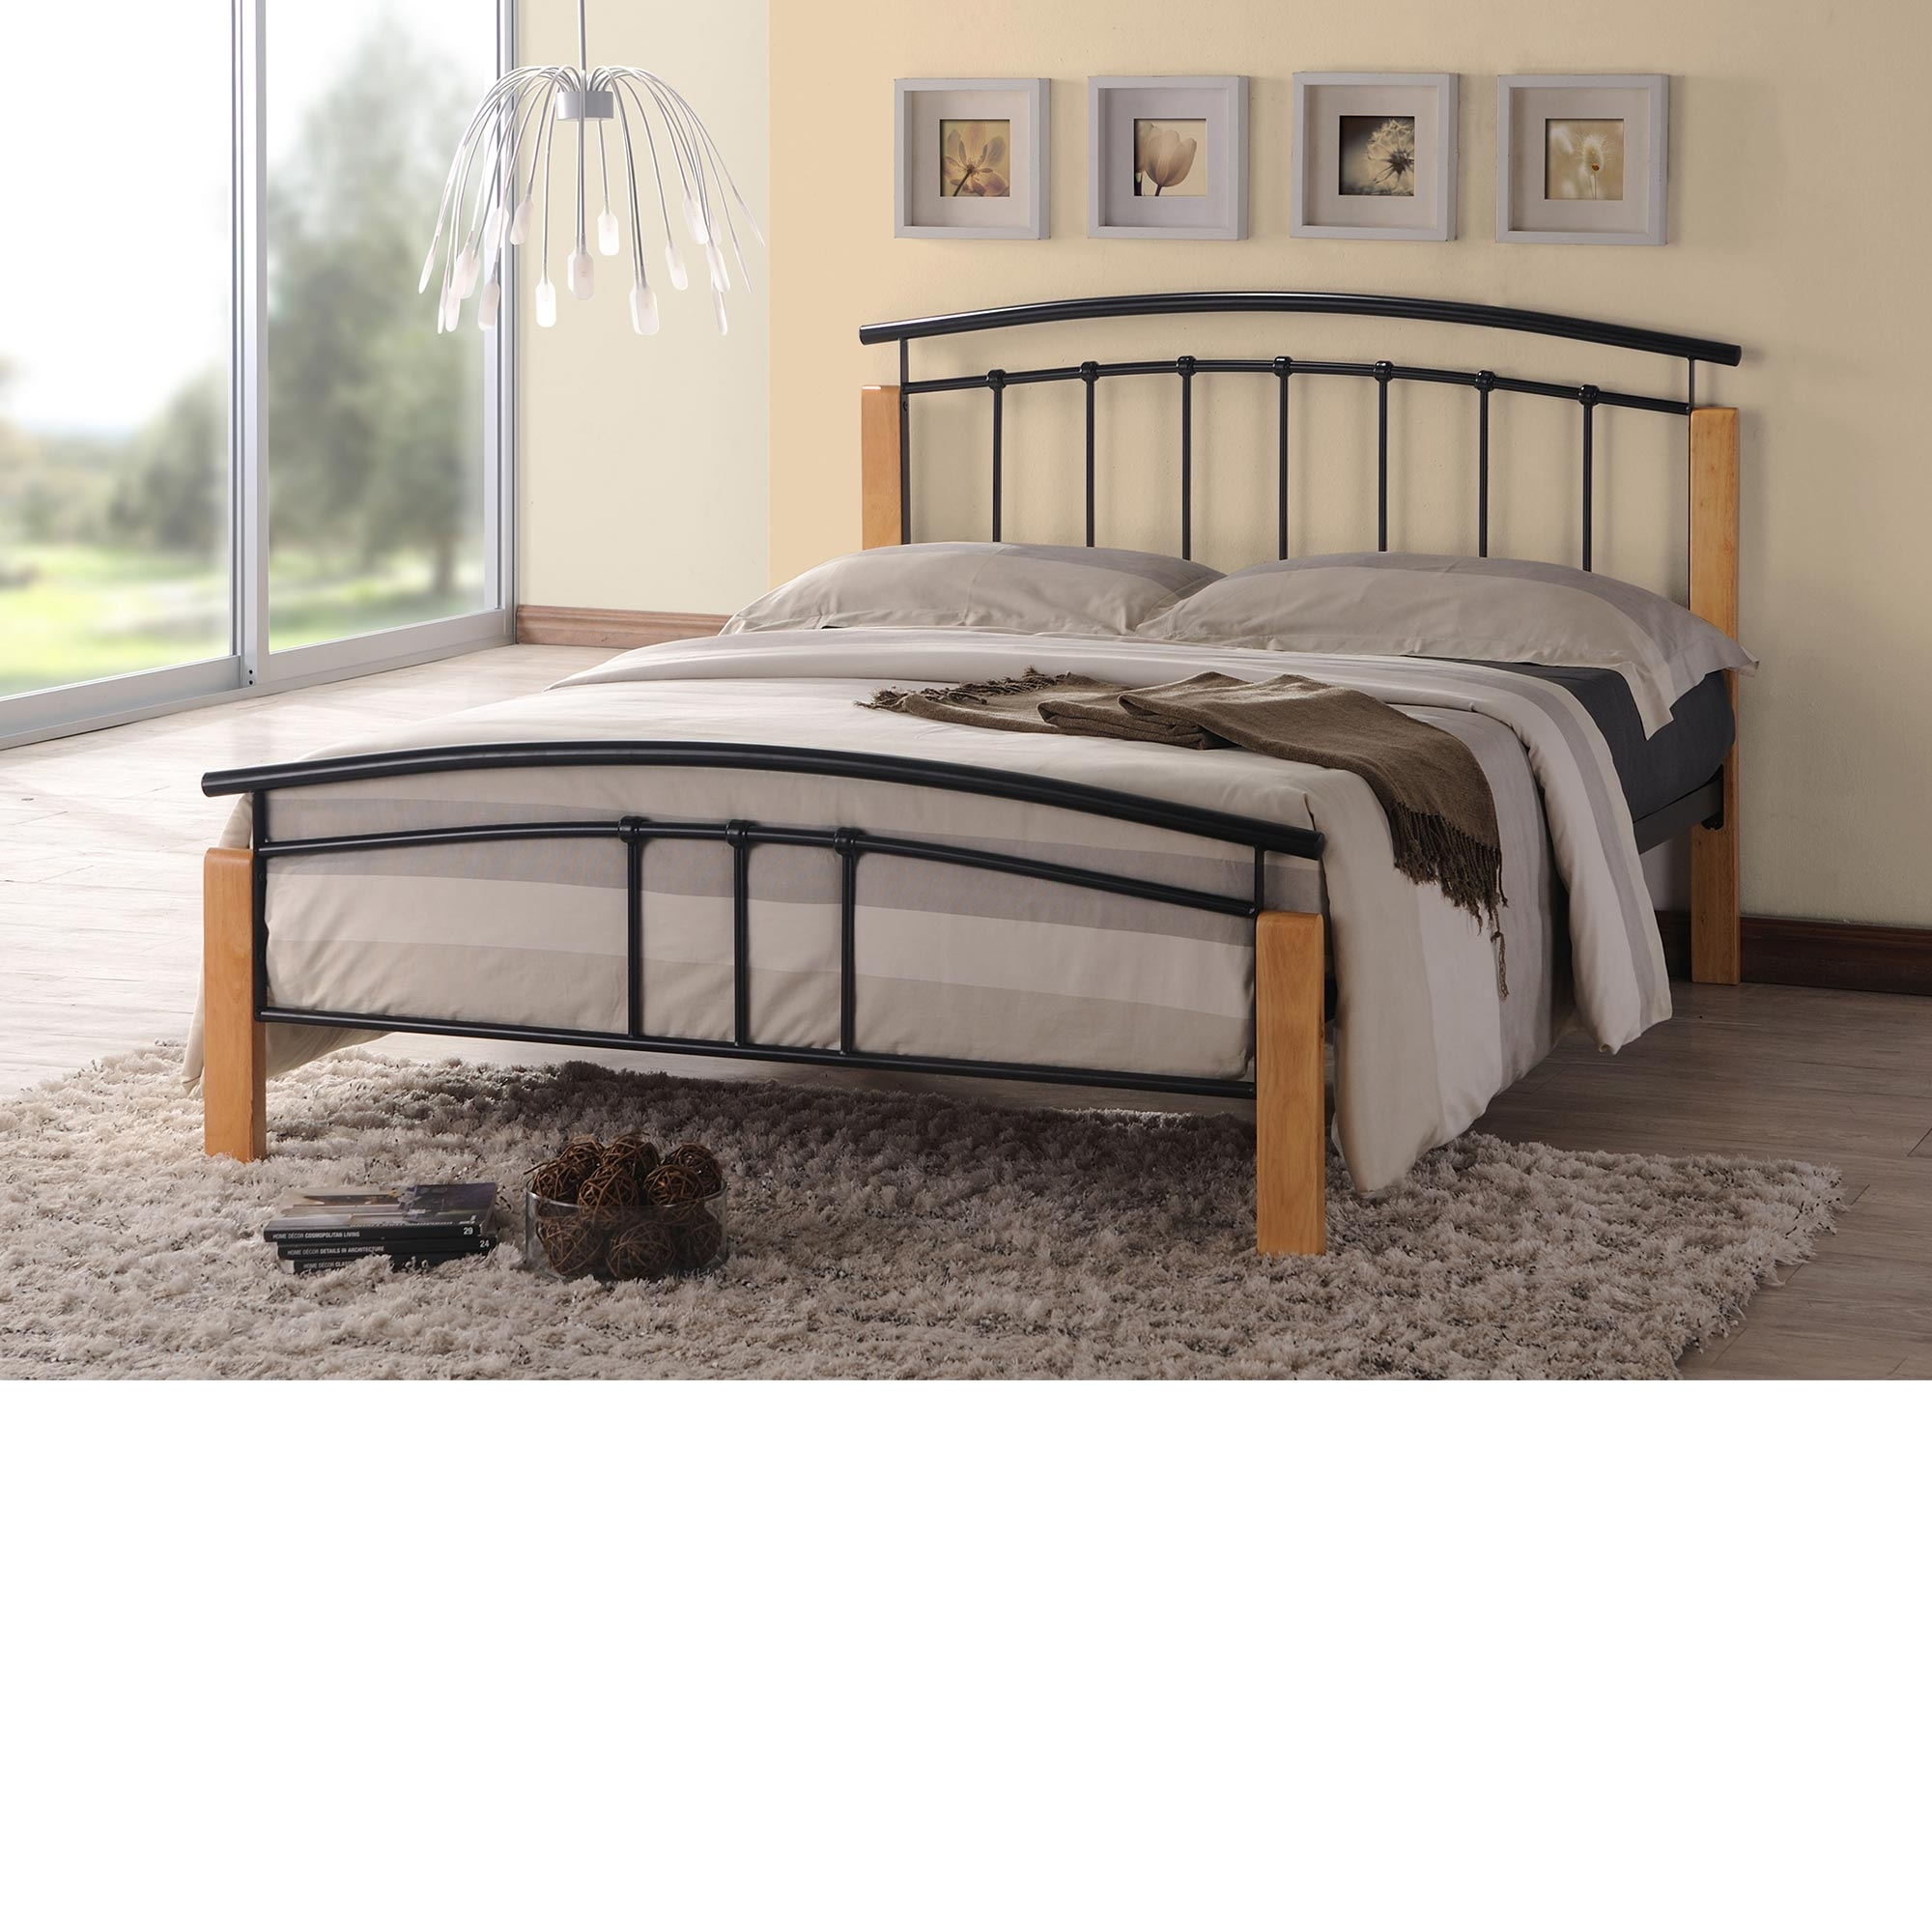 Stainless Steel Queen Bed Frame